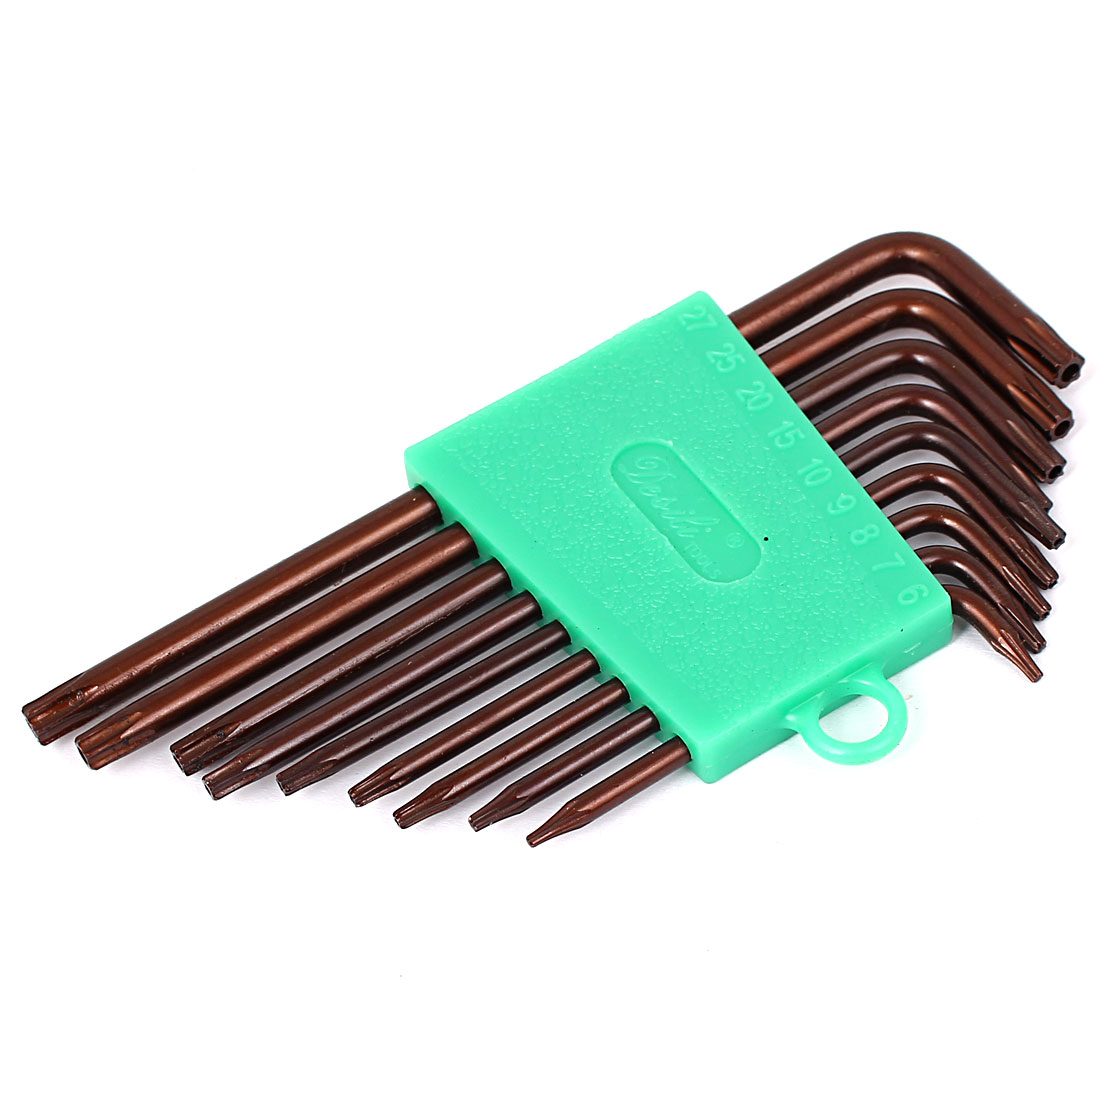 Unique Bargains T6-T27 L Style S2 Security Torx Key Wrench Spanner Tools Brown 9 in 1